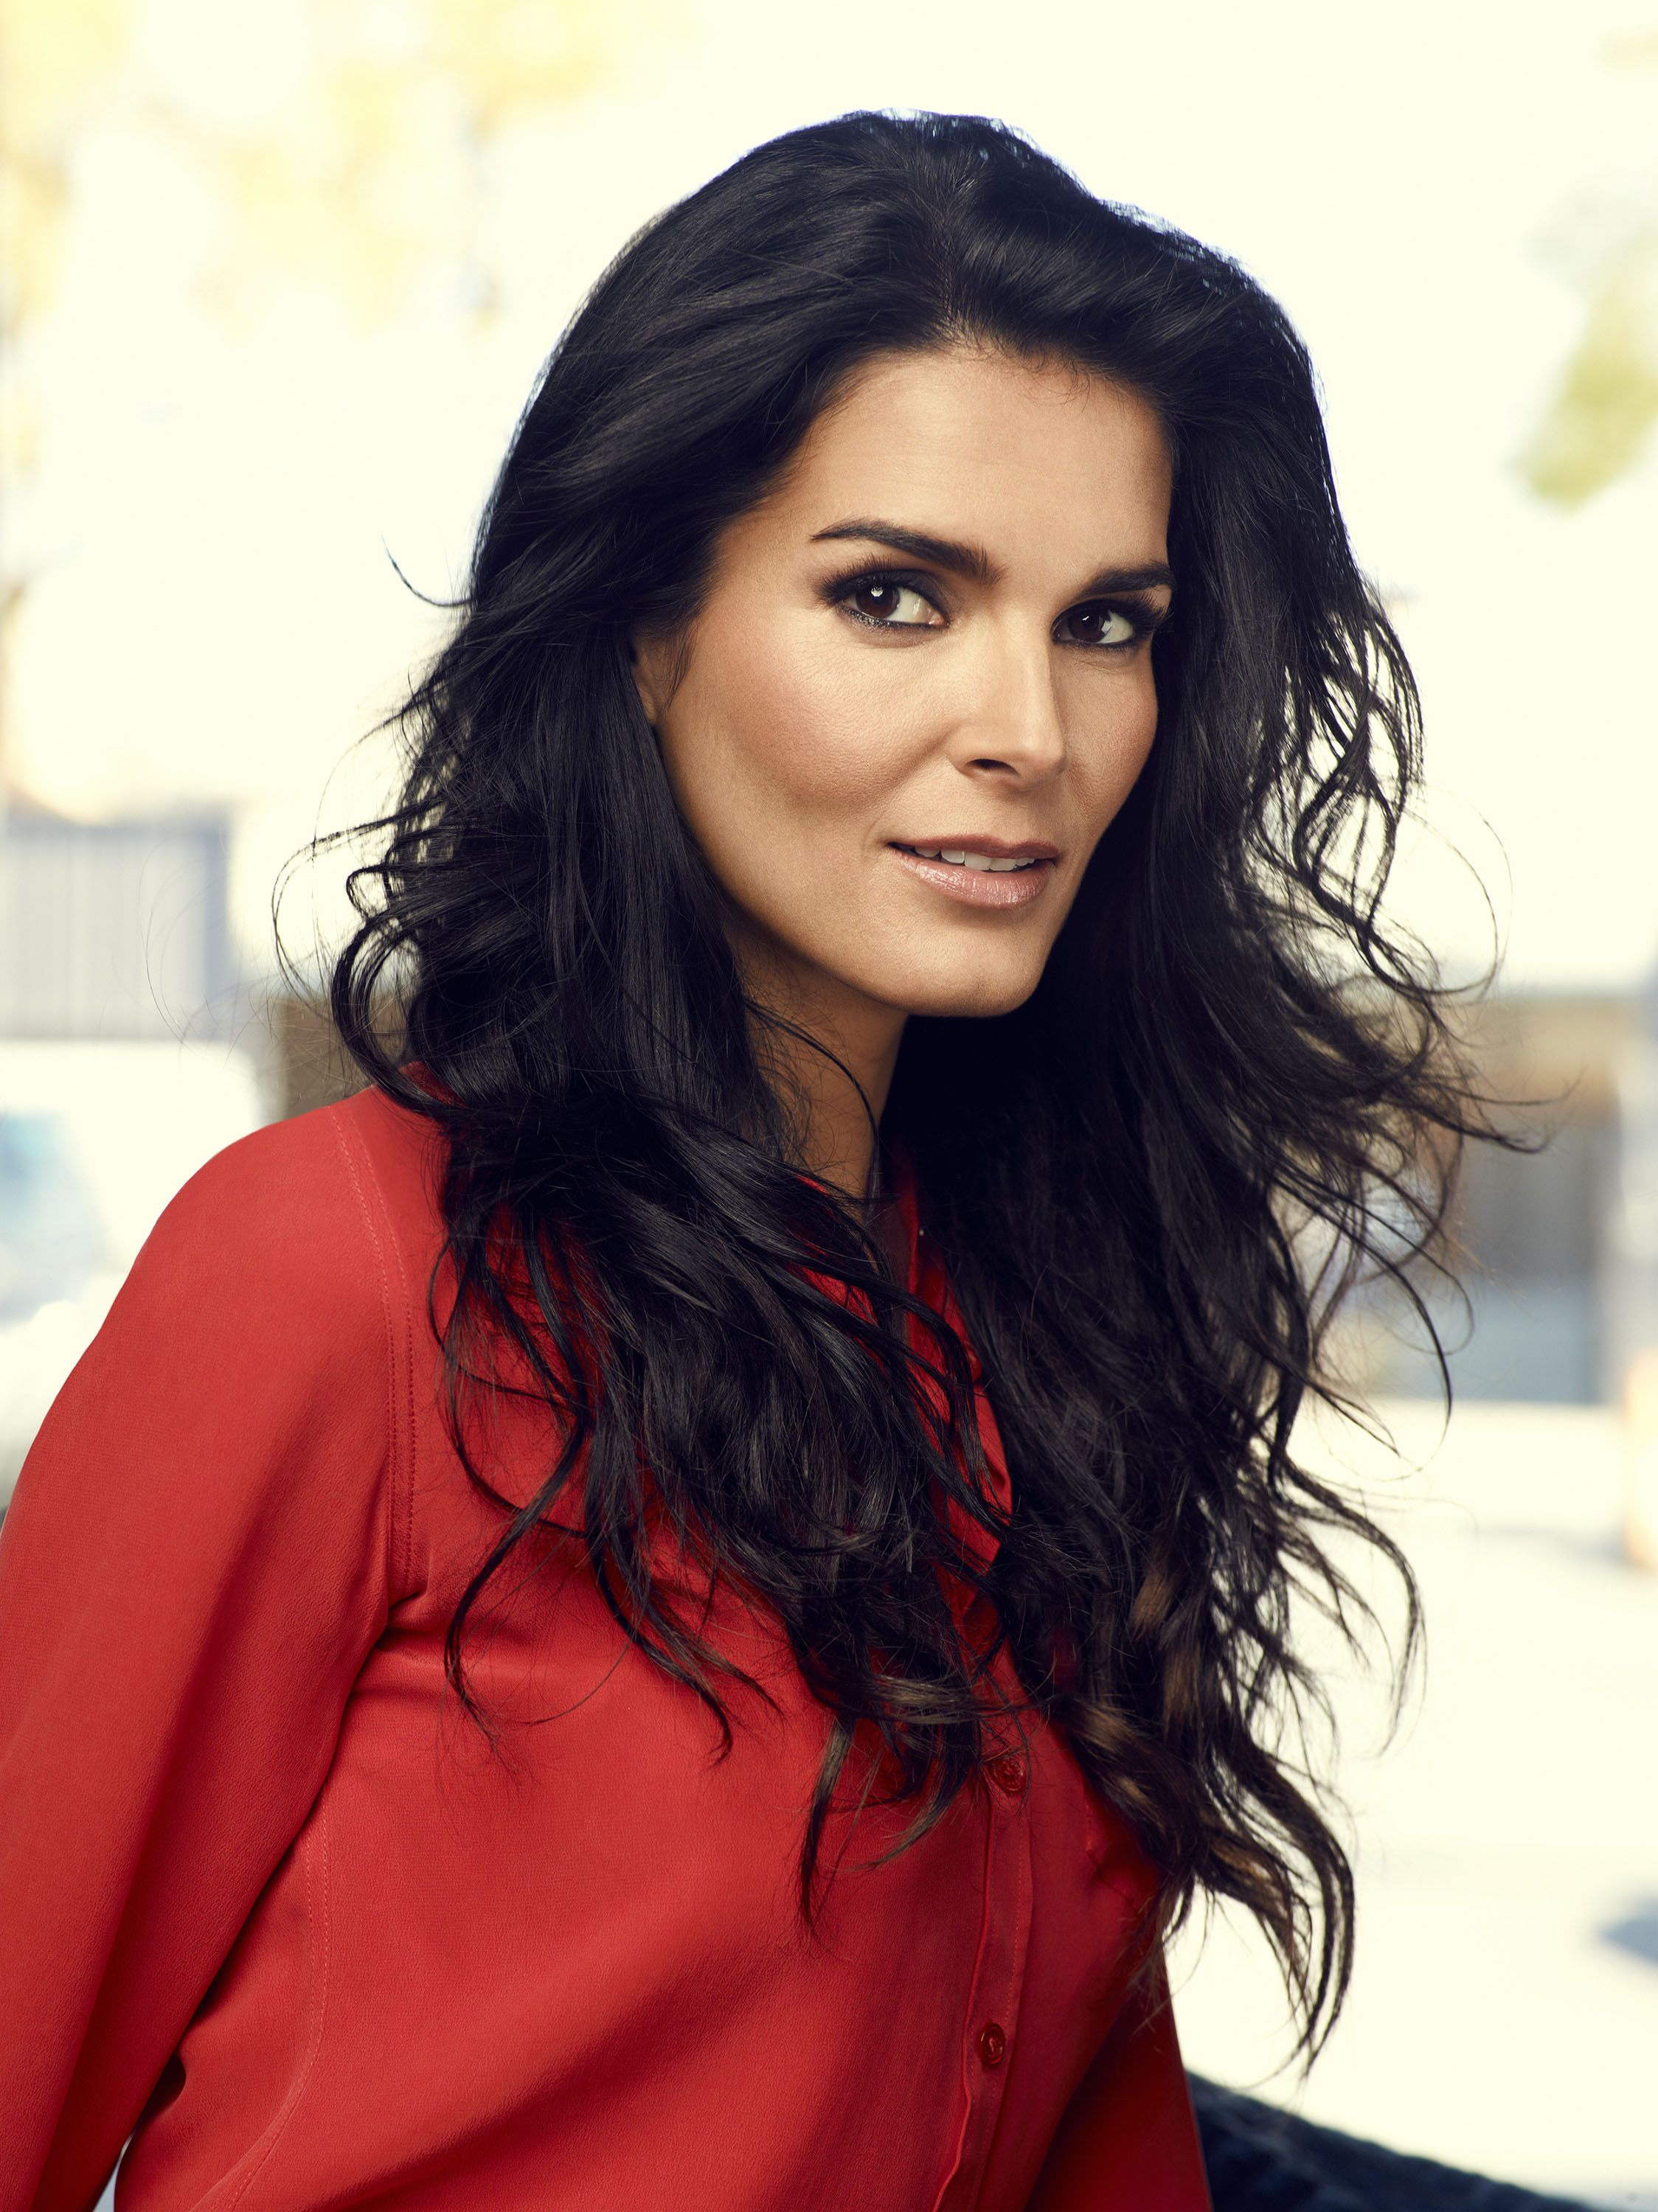 Angie Harmon At More Magazine September 2013: Angie Harmon!! She's So Beautiful & Funny!!! I Love Her